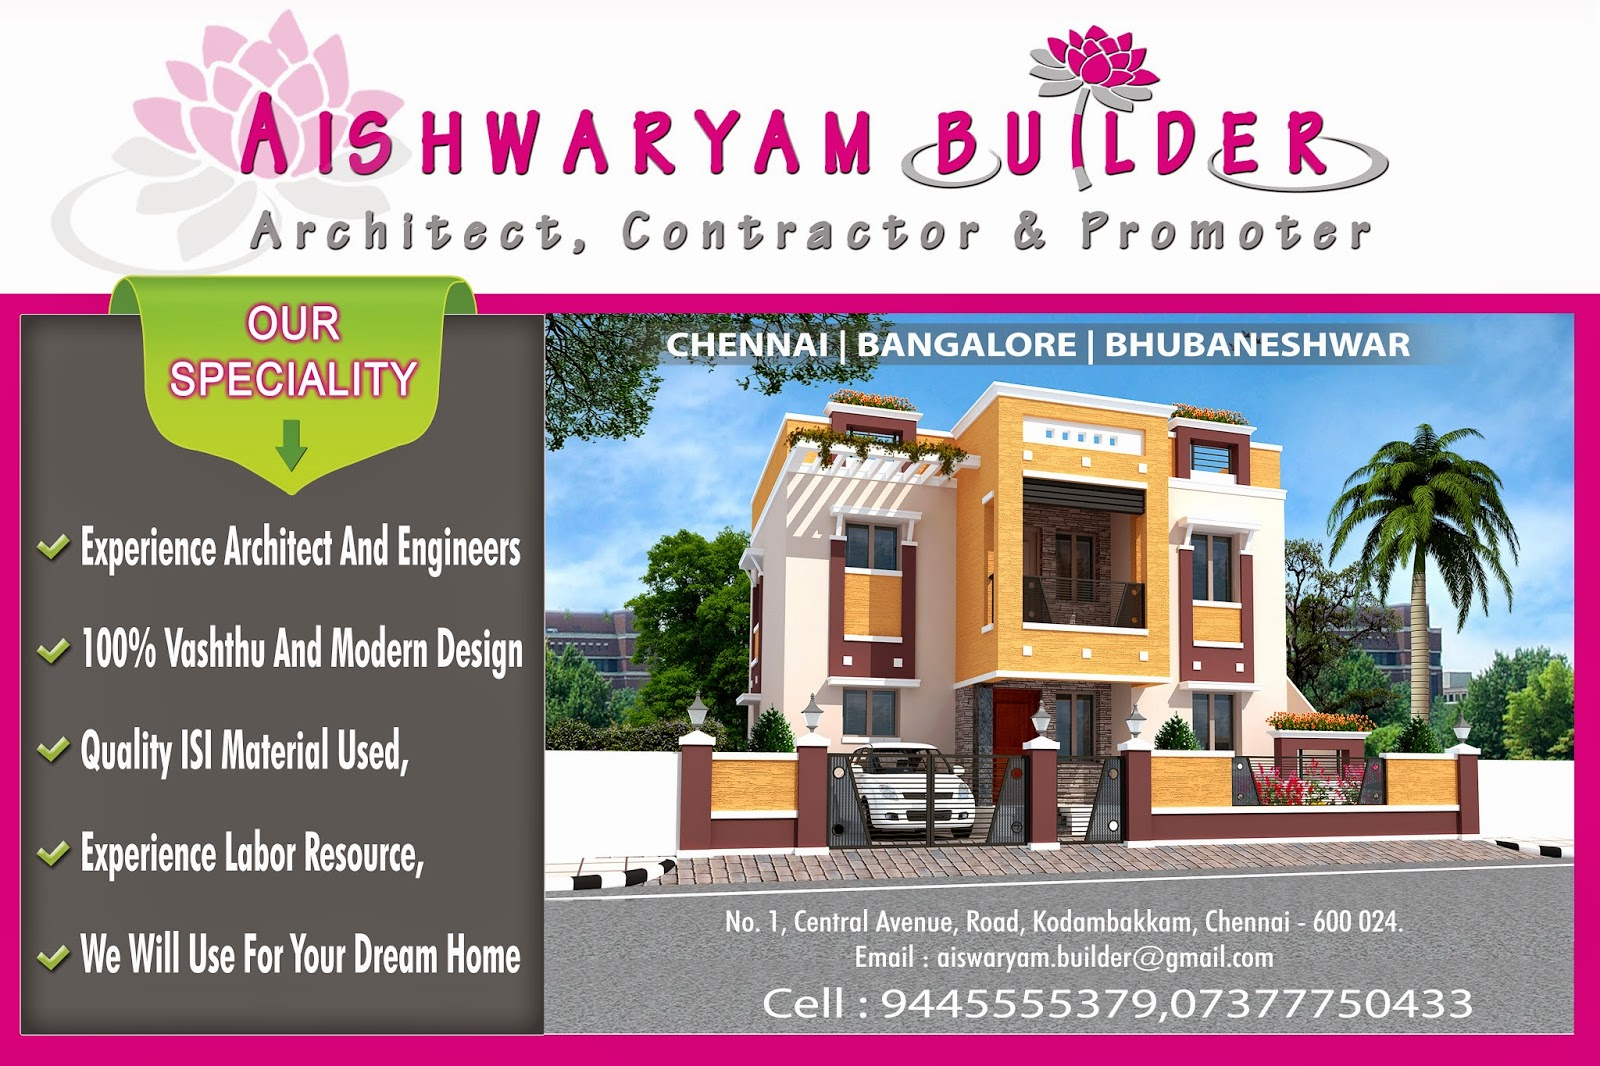 contractors in chennai we are offering service architects in